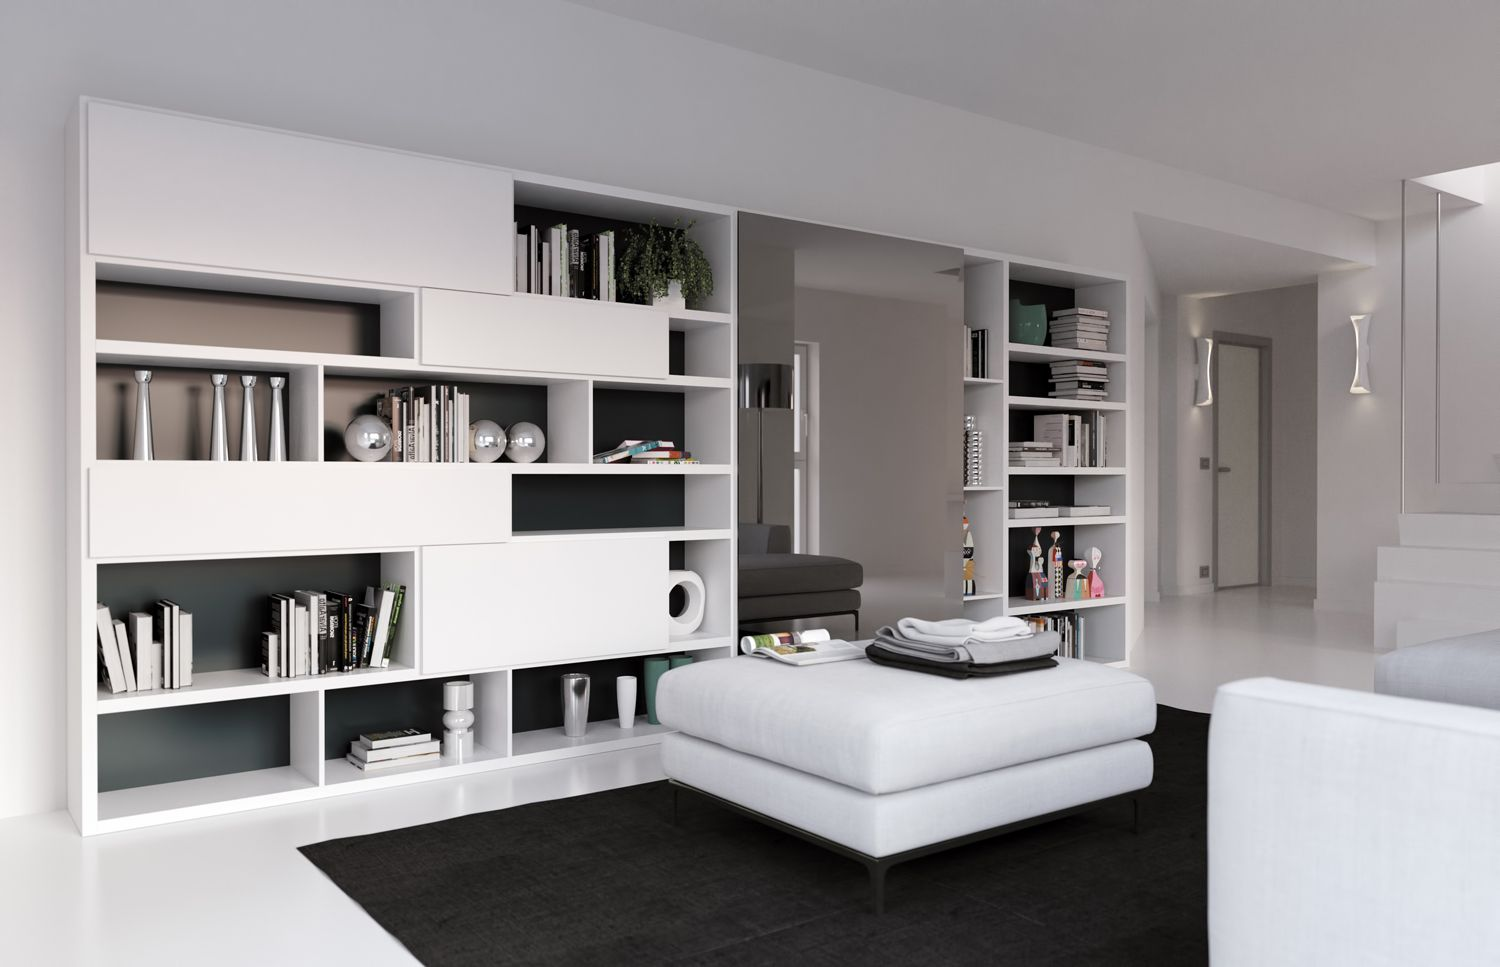 Great arredamento moderno lovere with arredamento casa moderna for Arredamento liberty moderno